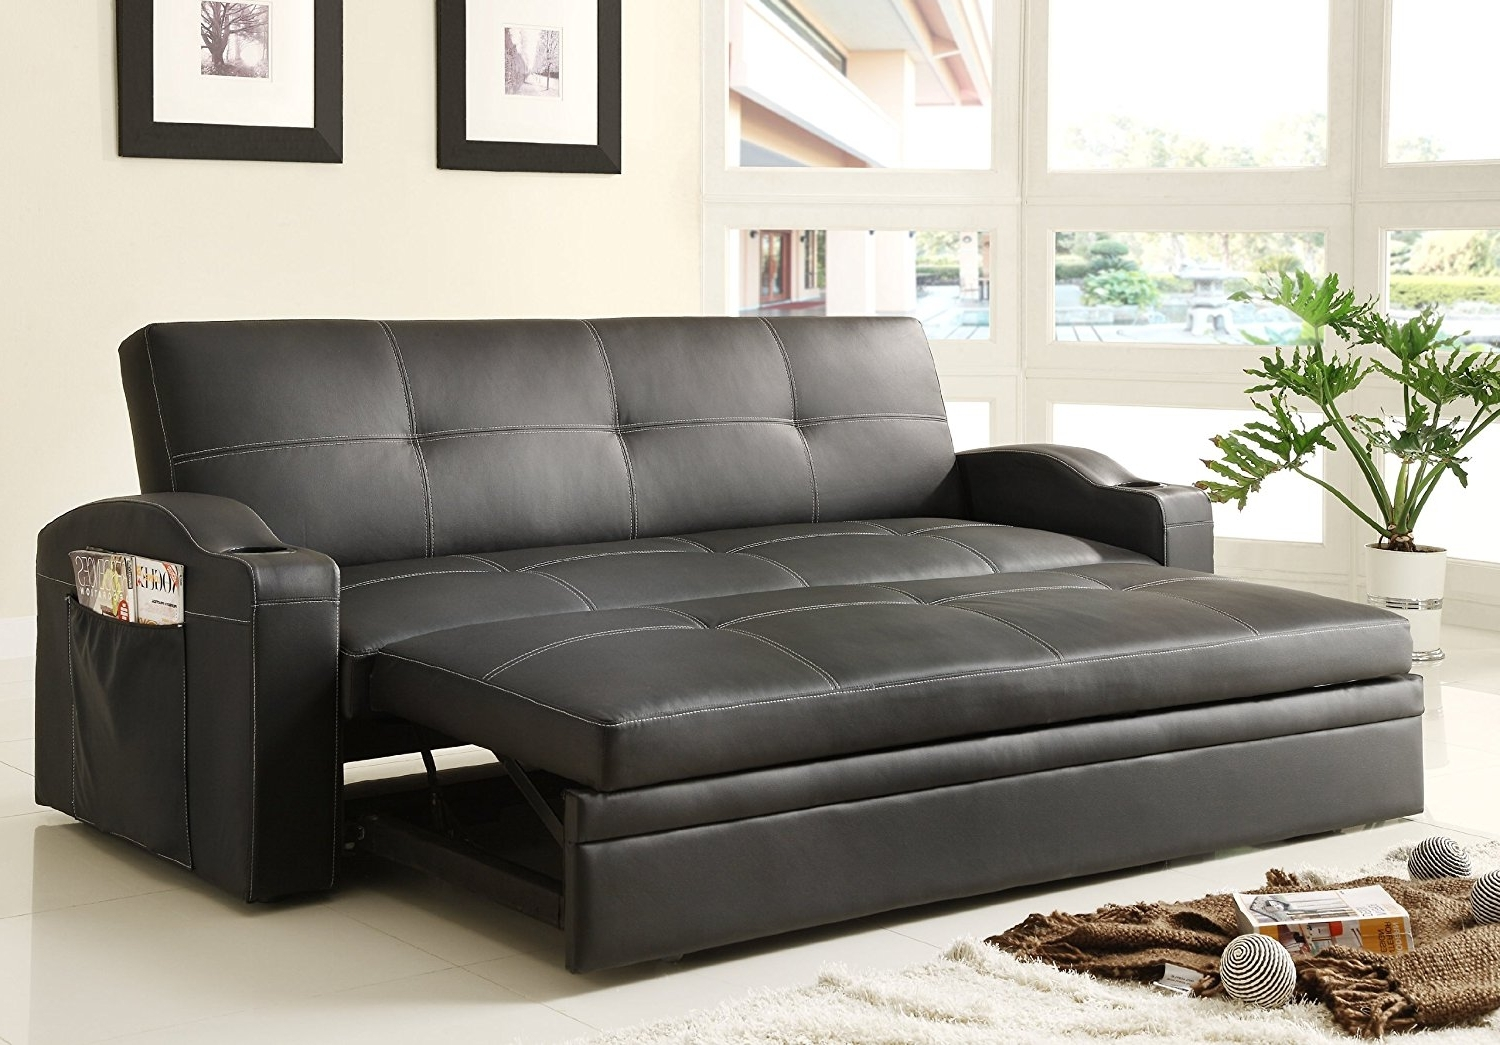 Trendy Convertible Sofa Design Ideas — Cabinets, Beds, Sofas And Within Convertible Sofas (View 17 of 20)